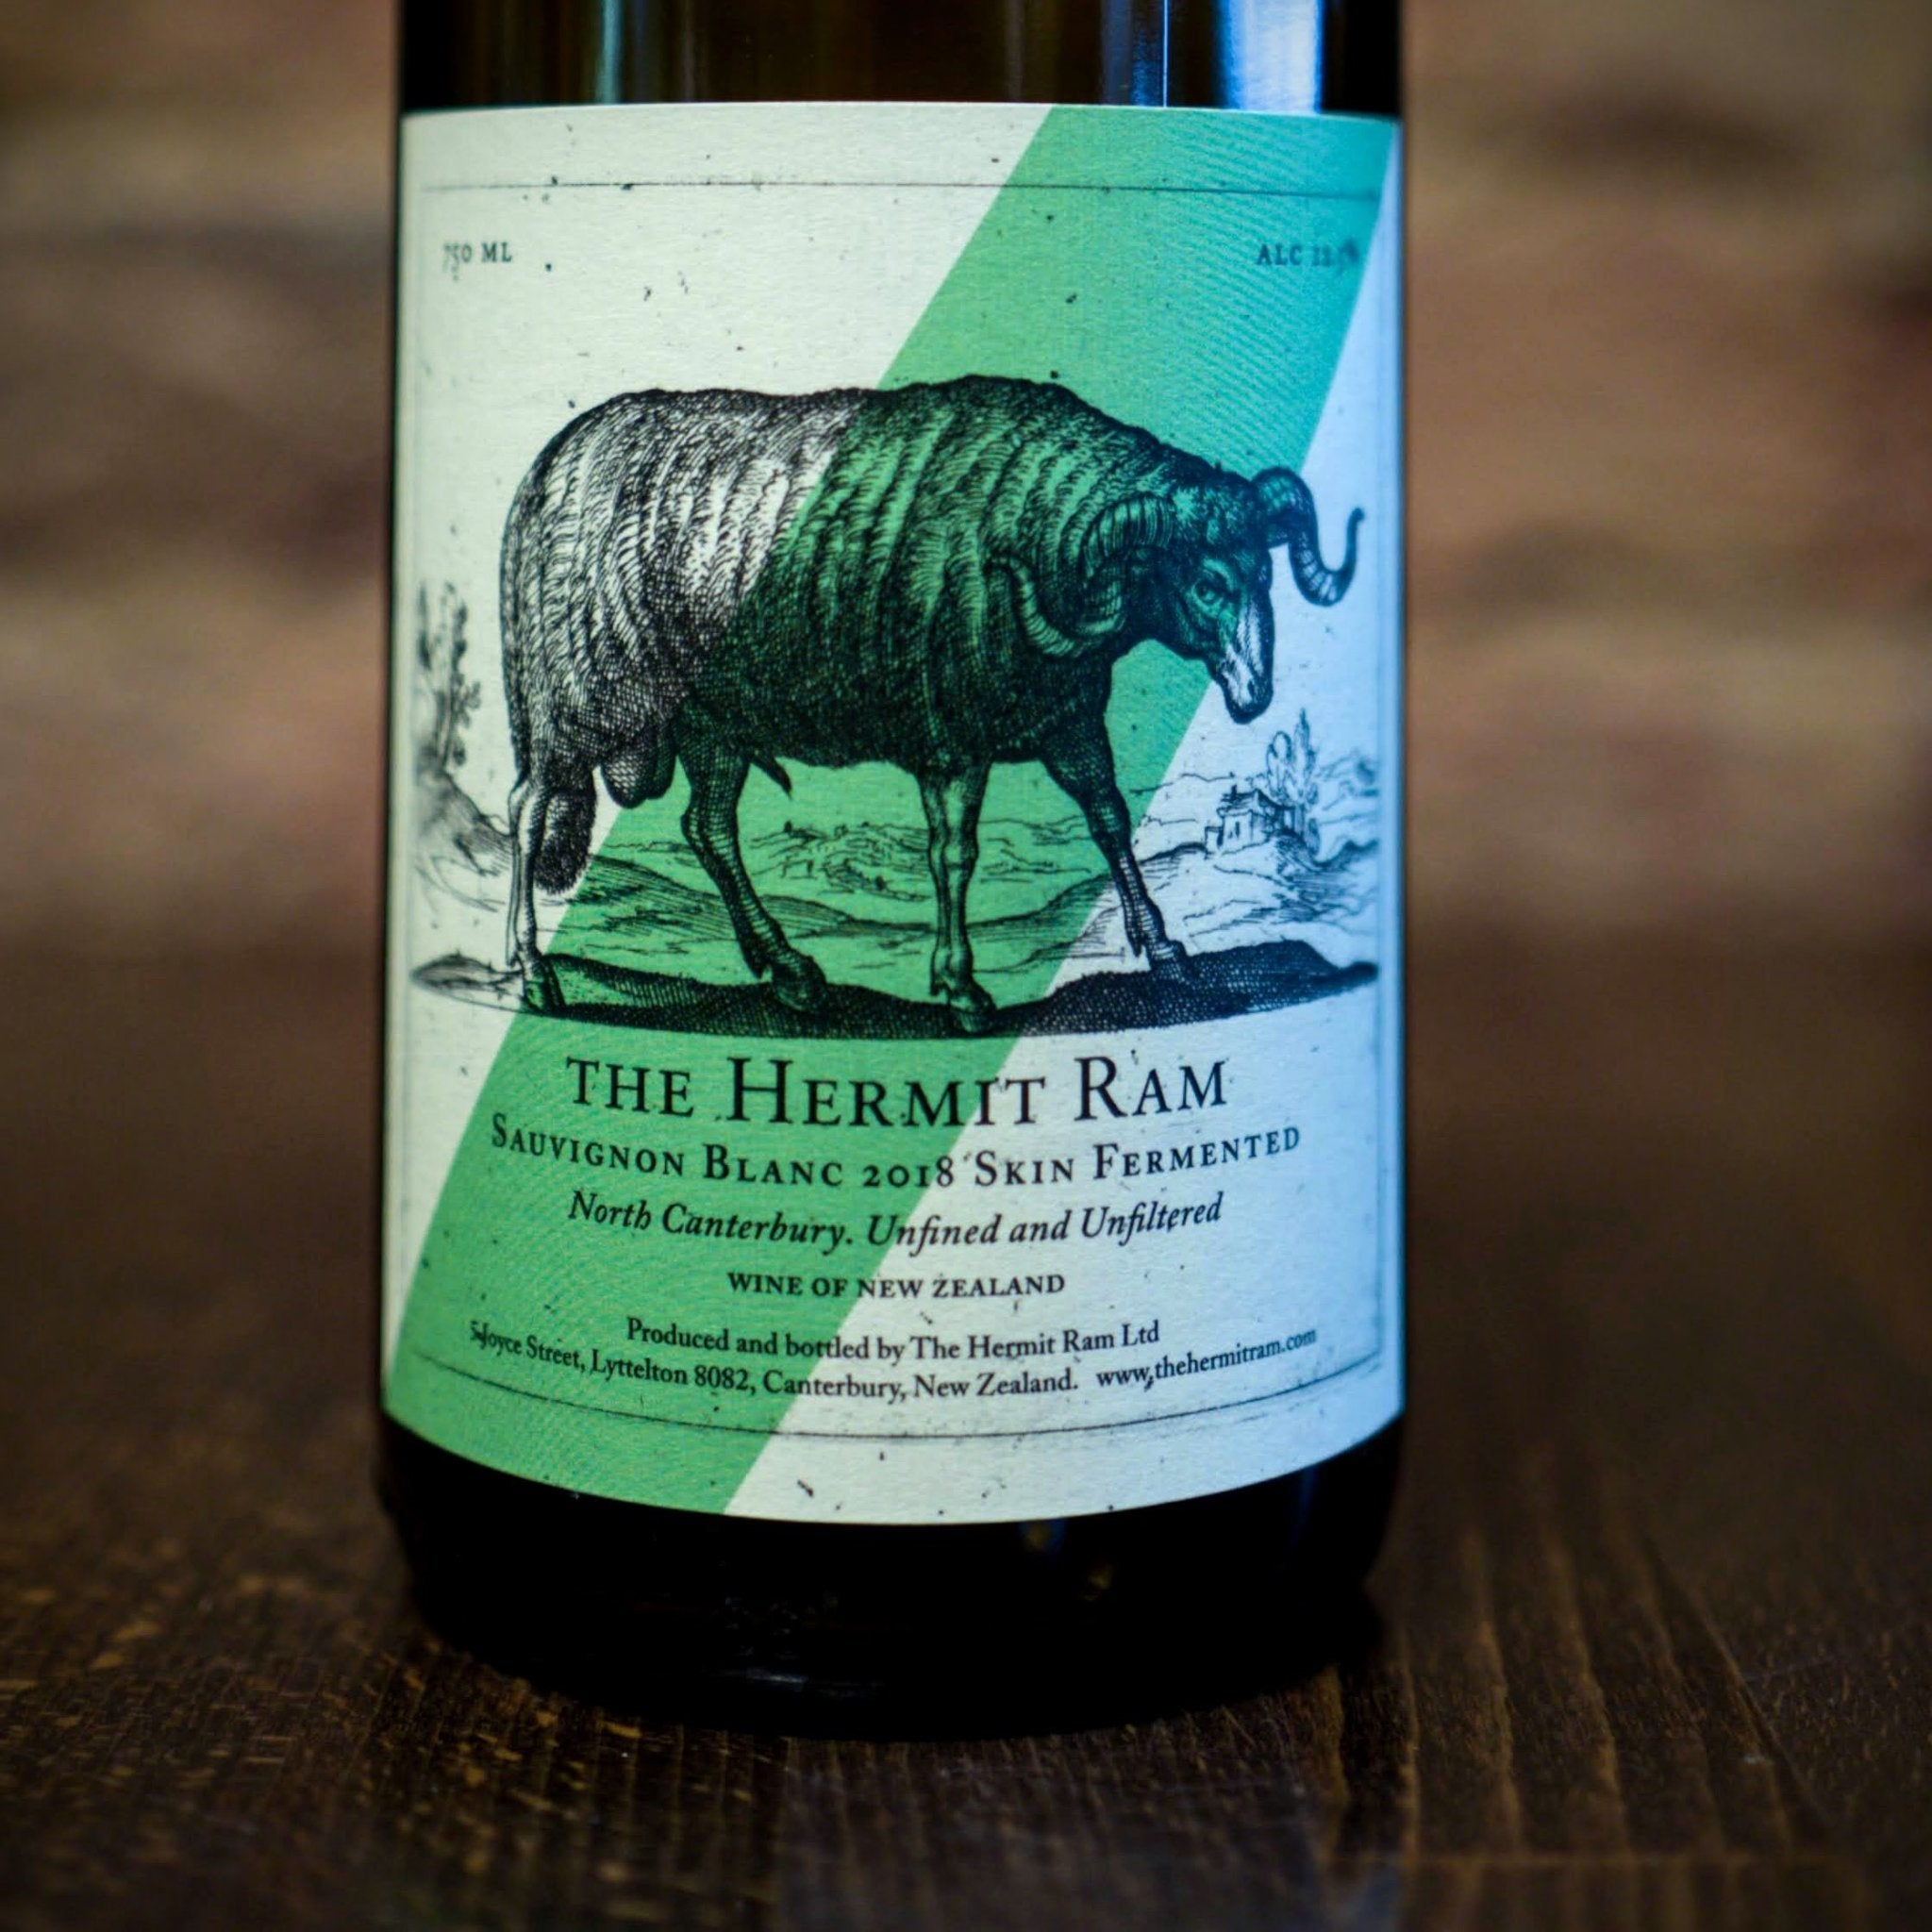 Sauvignon Blanc 2018, The Hermit Ram, New Zealand (Orange wine) - Vindinista